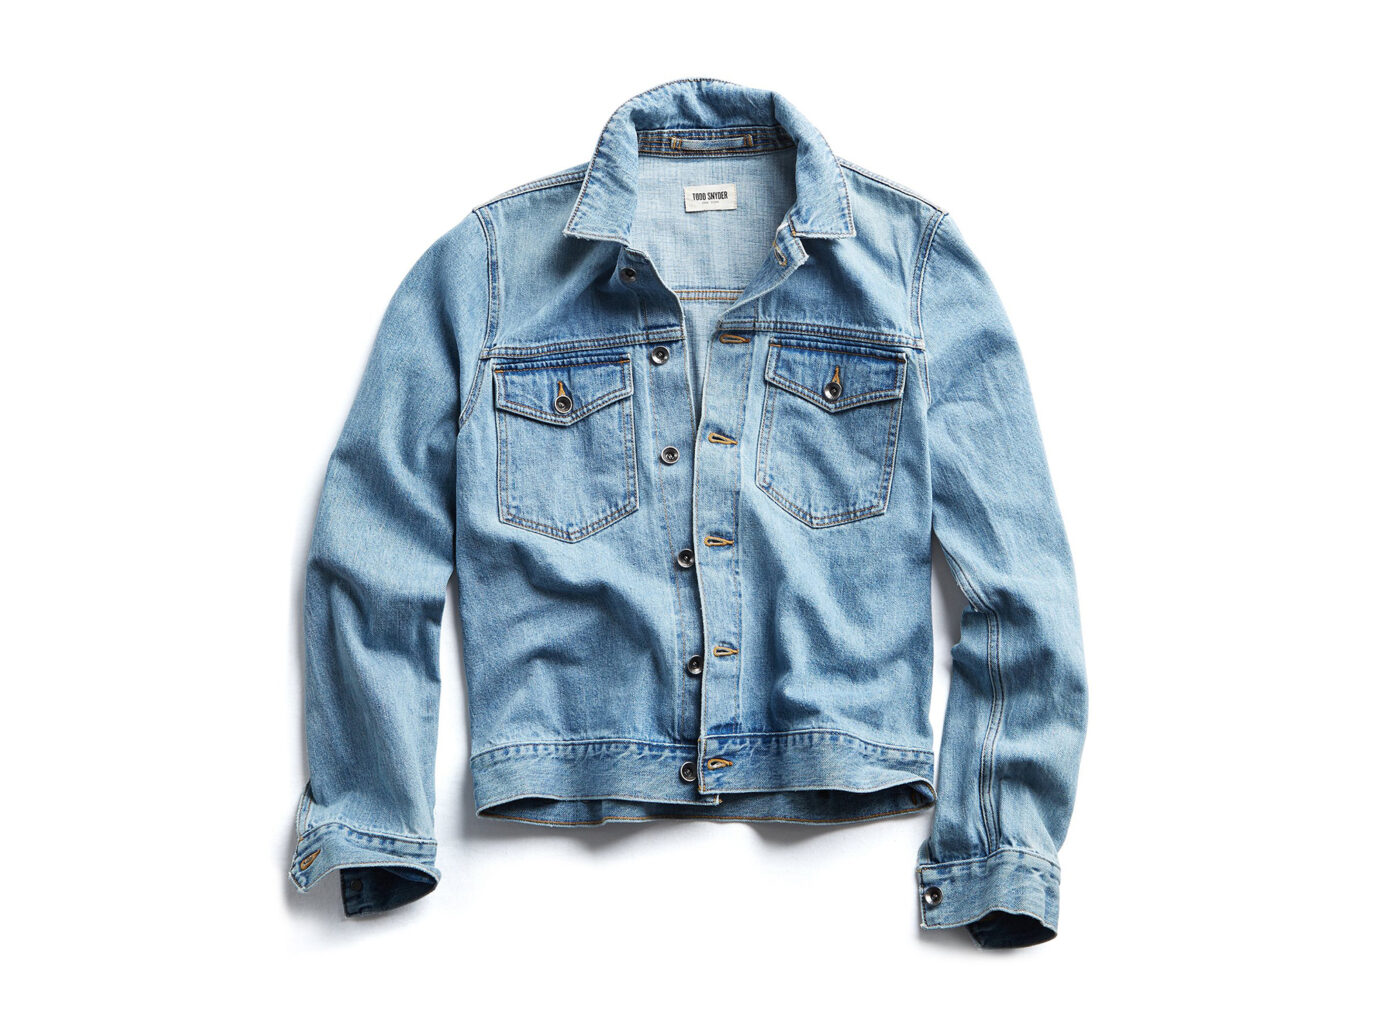 Todd Snyder Japanese Stretch Selvage Denim Jacket